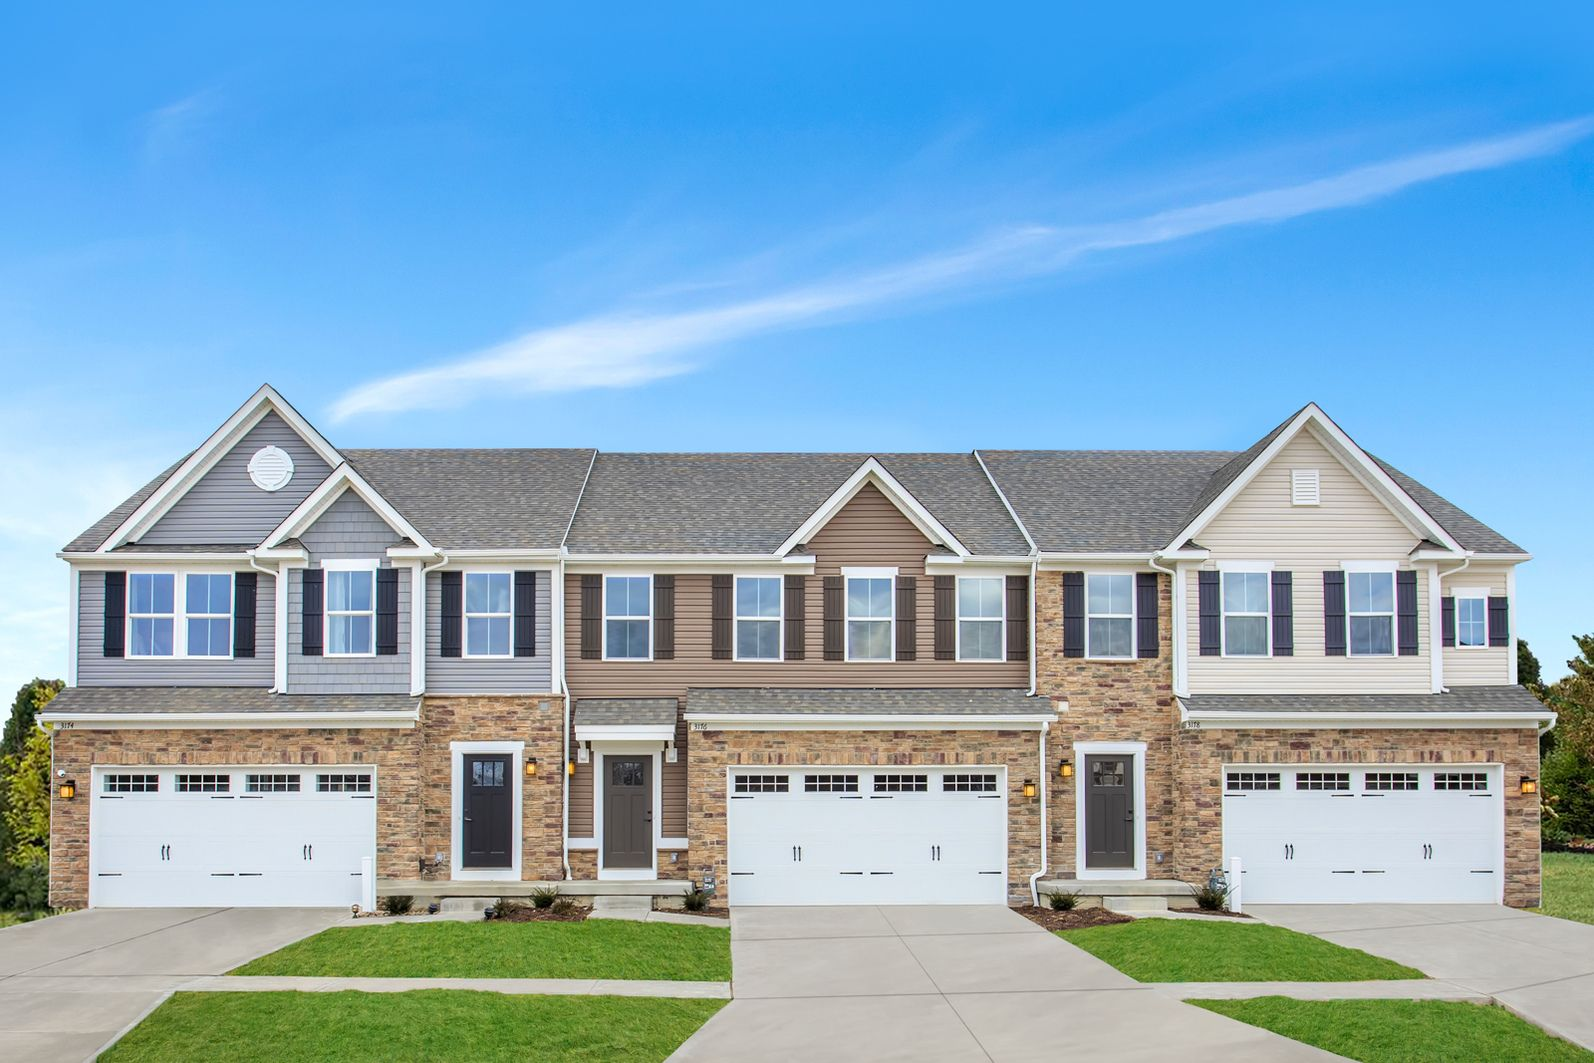 WINDSOR POINTE – COMING SOON TO FAIRFIELD TOWNSHIP FALL 2021:2-Story single-family style townhomes w/ basements in Fairfield Township. Seconds from 129 & nearby plenty of shopping and dining. All appliances included. Upper $200s.Join the VIP List today!